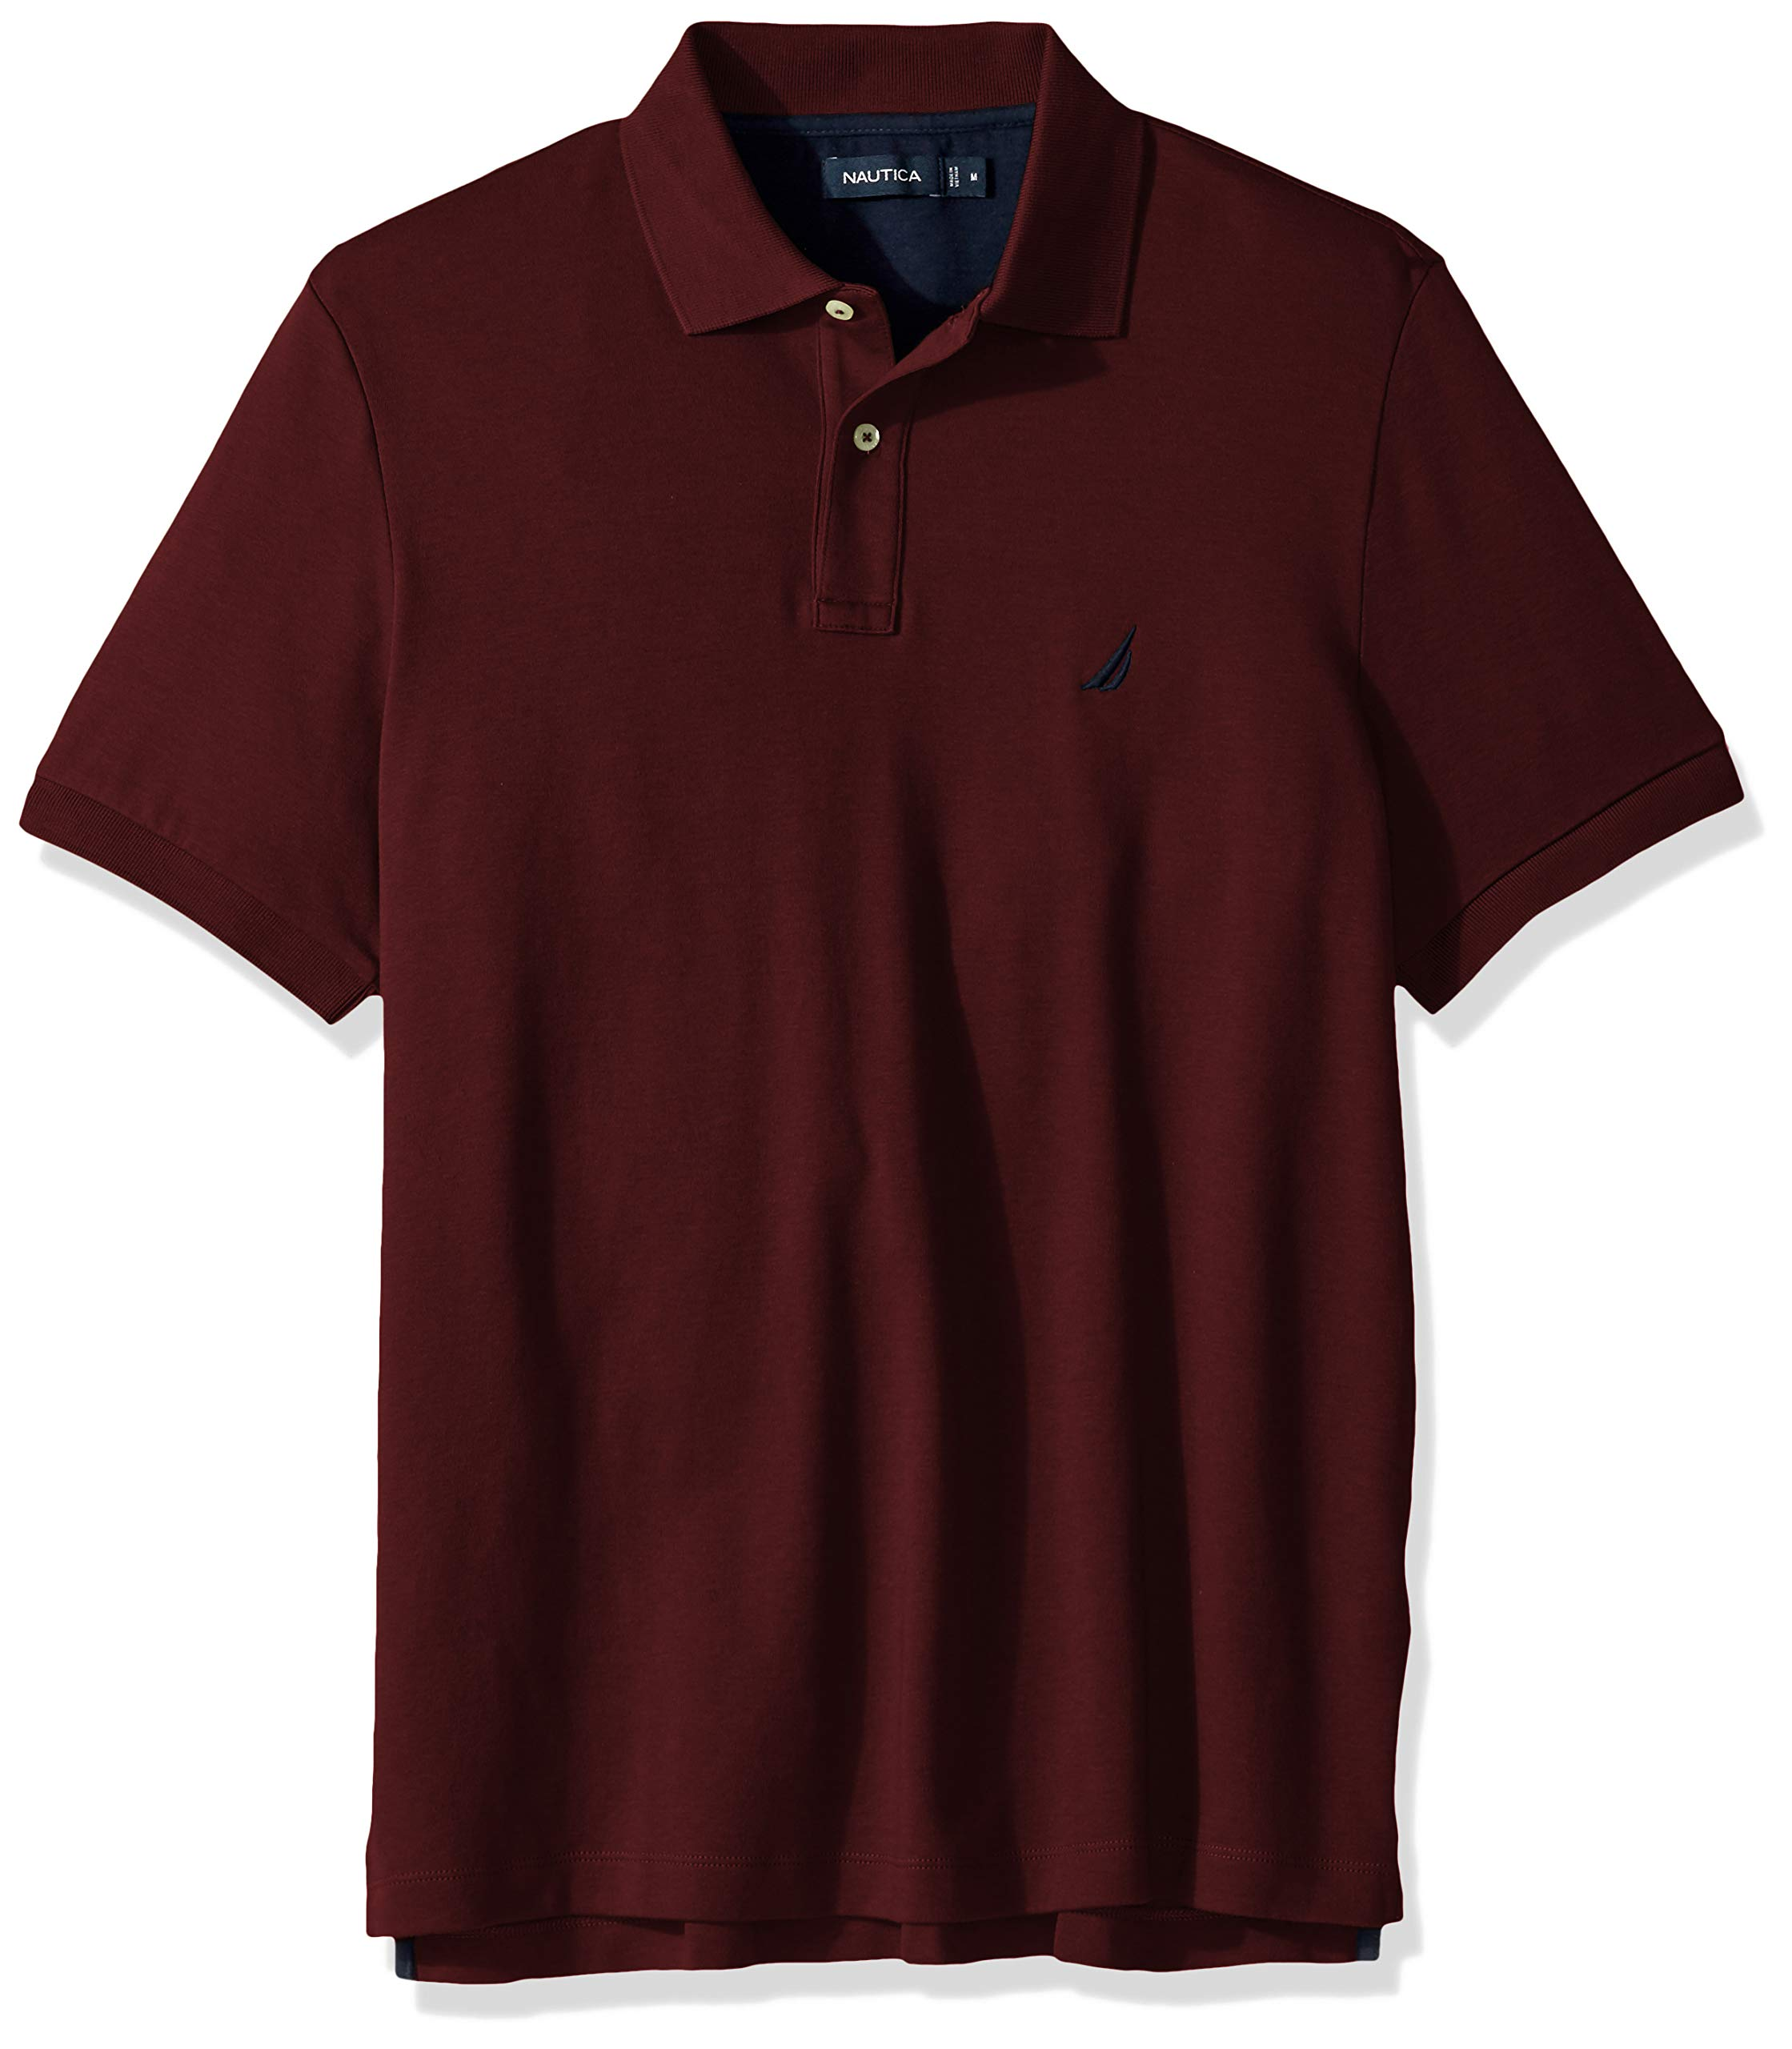 Nautica Men's Classic Fit Short Sleeve Solid Soft Cotton Polo Shirt, Royal Burgundy, 2X Big by Nautica